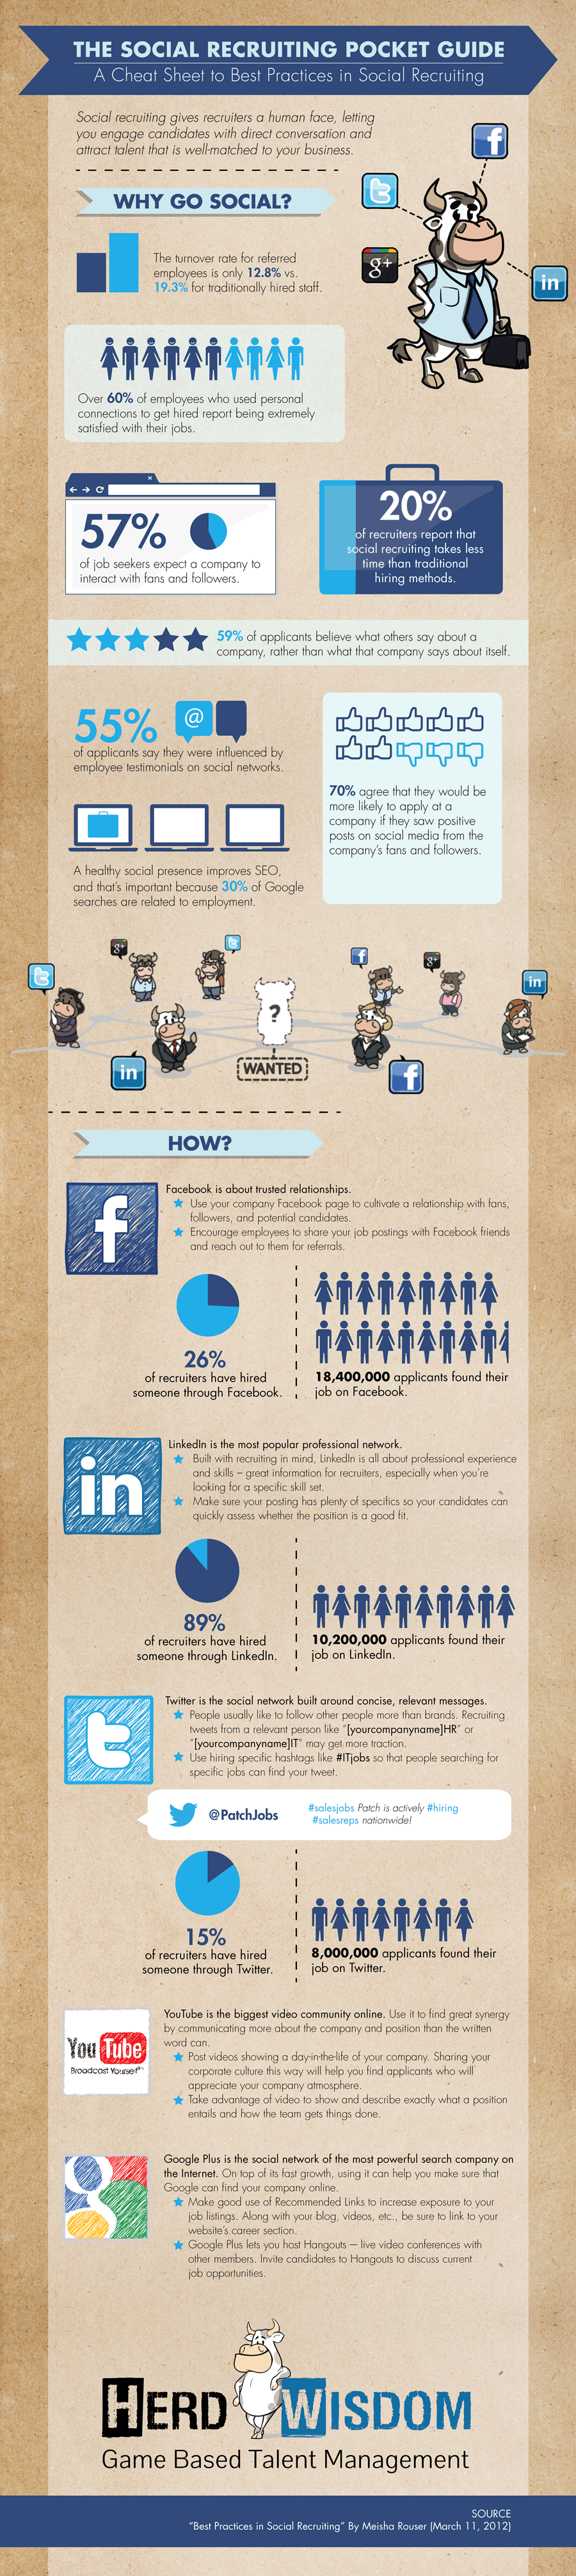 pocket guide social media recruiting